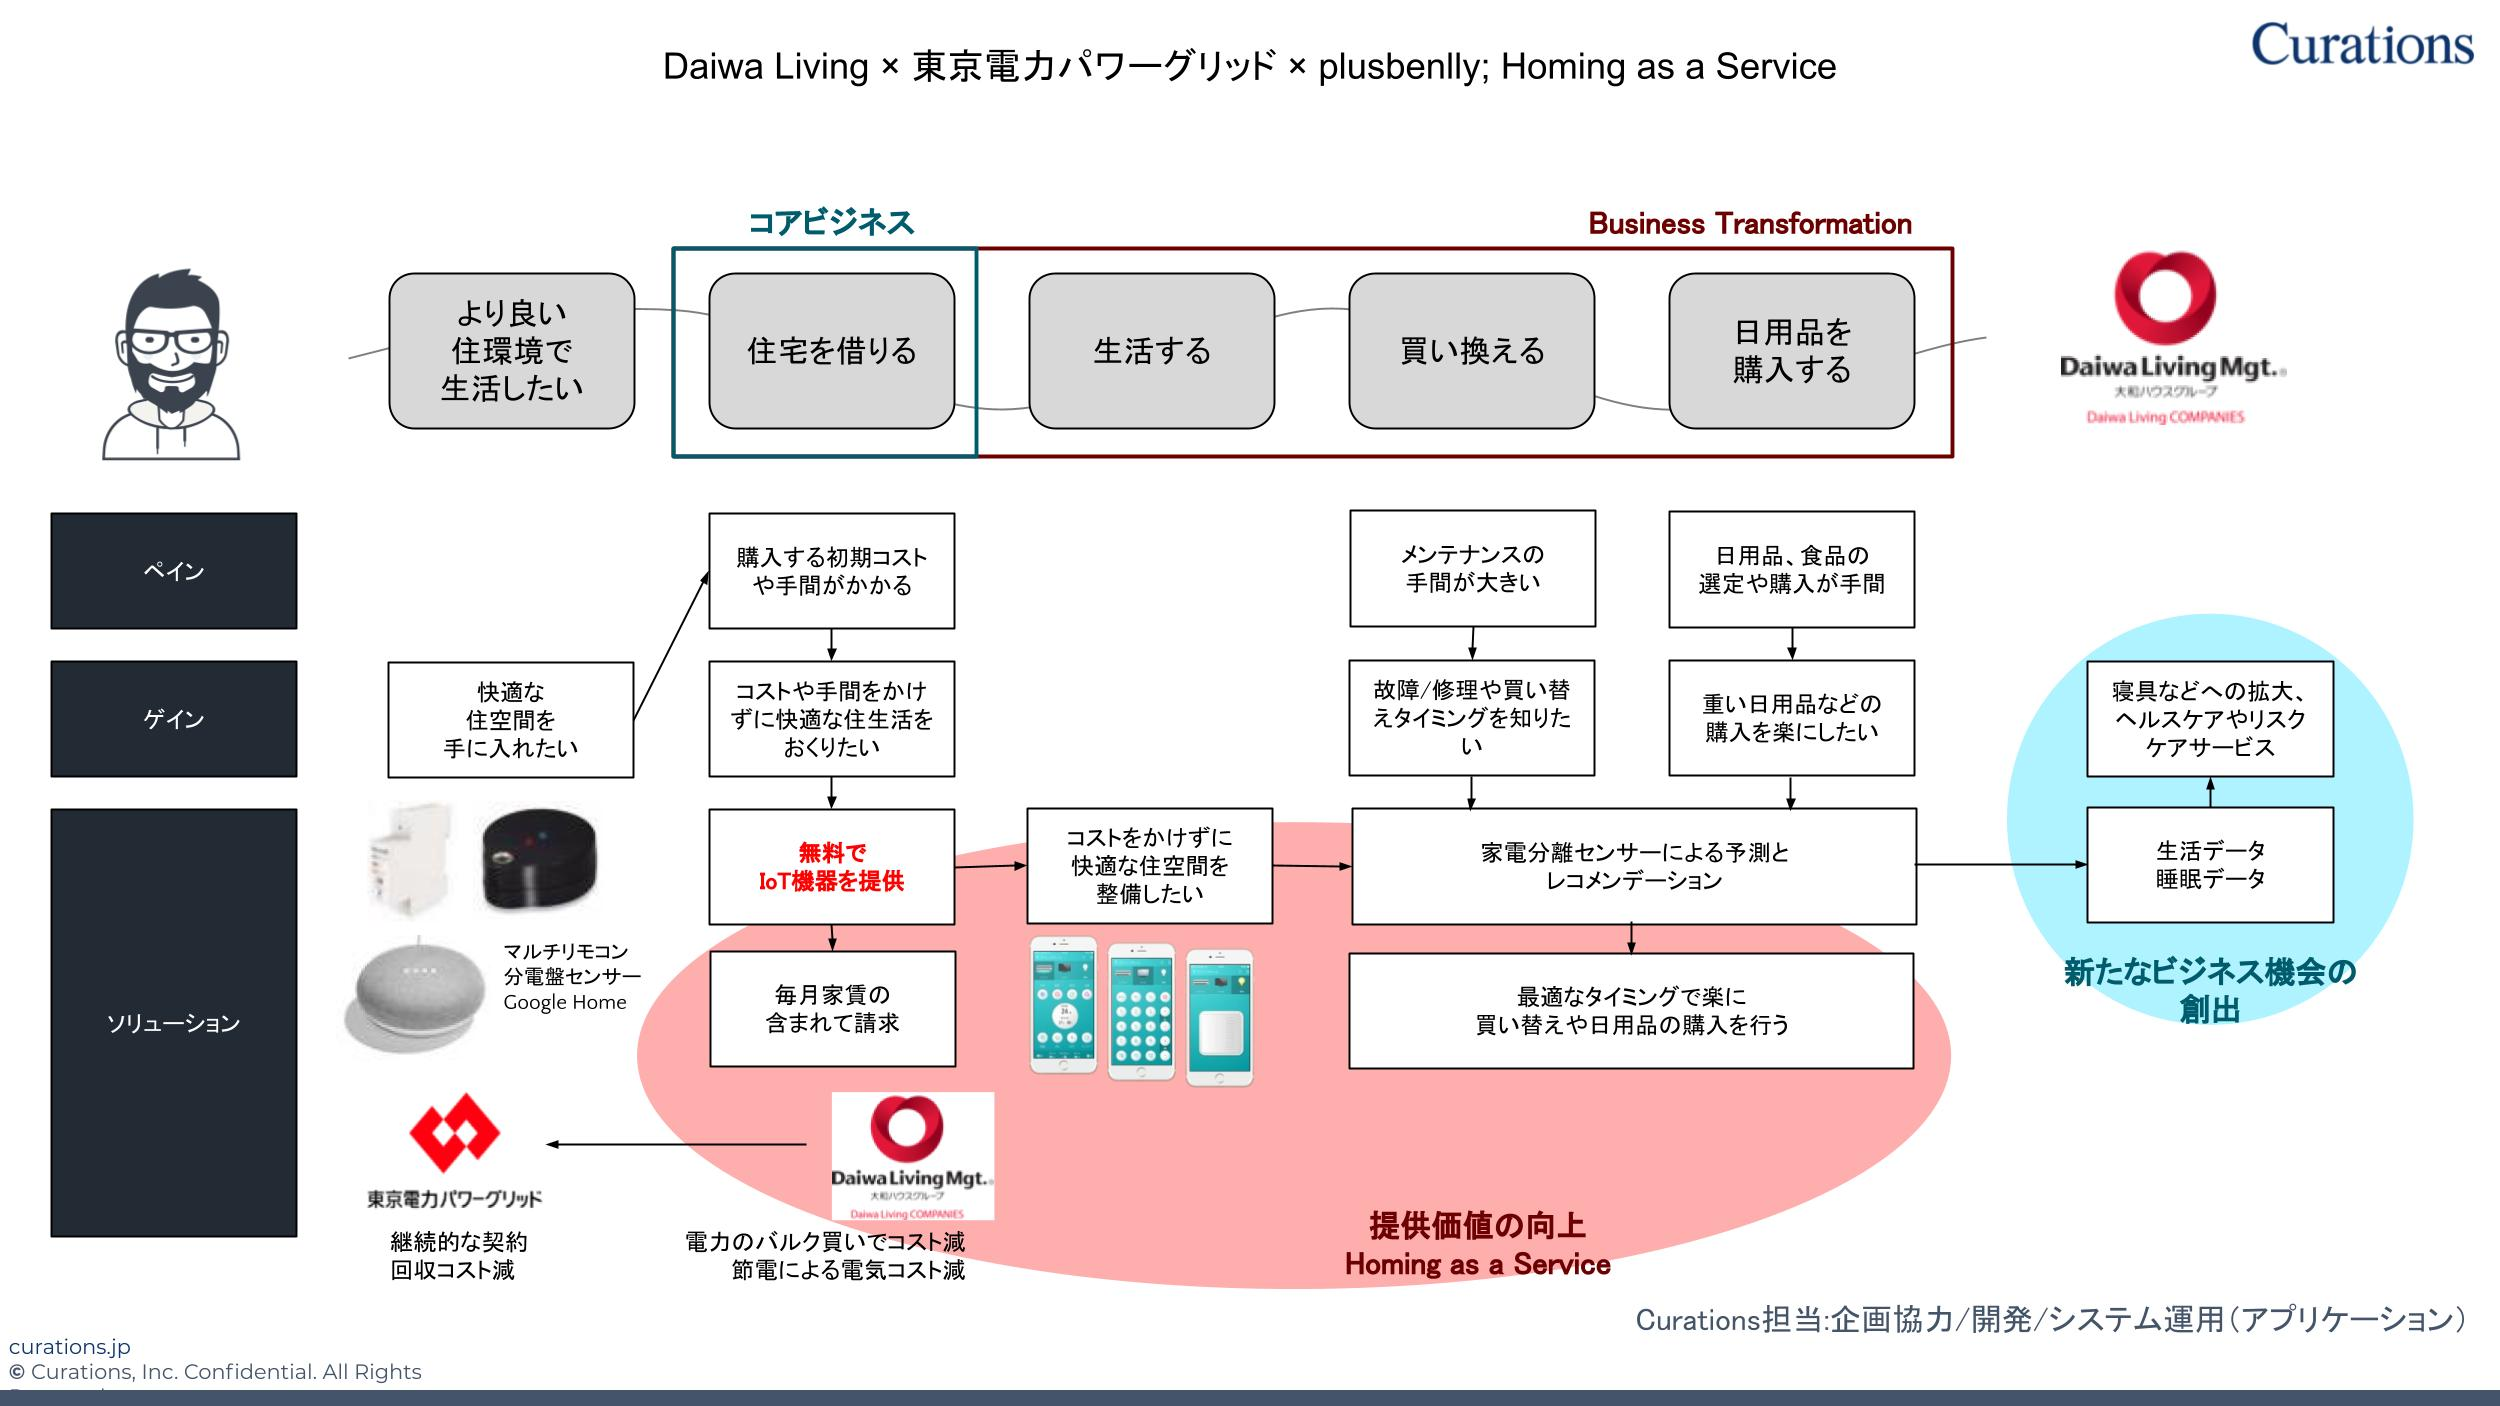 Homing as a Service